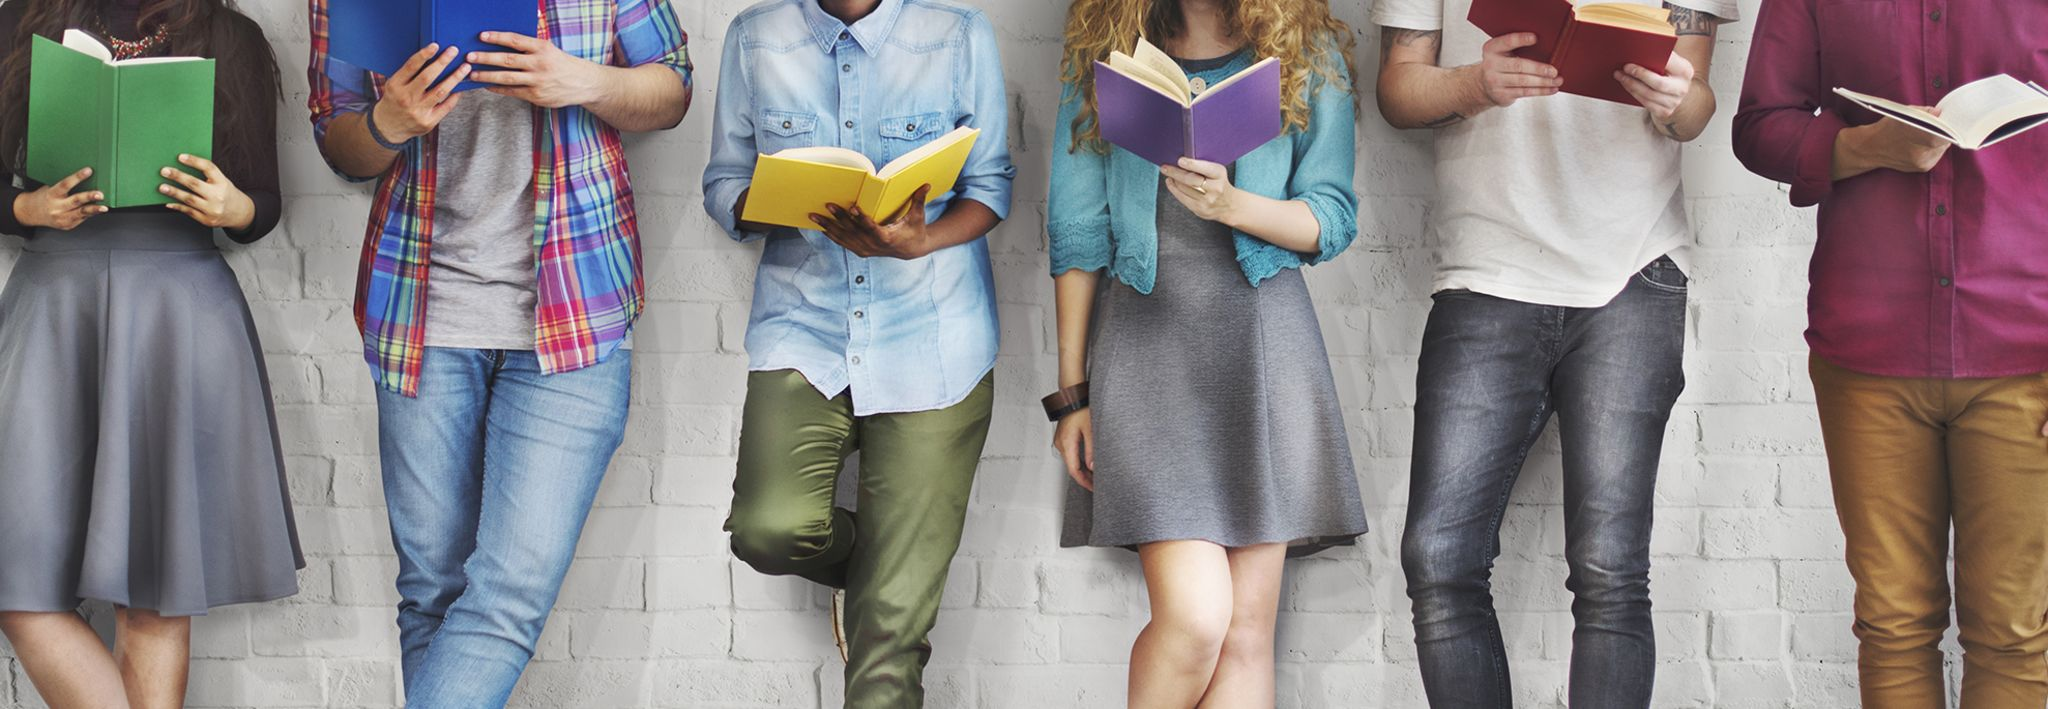 College students posing with colorful books.